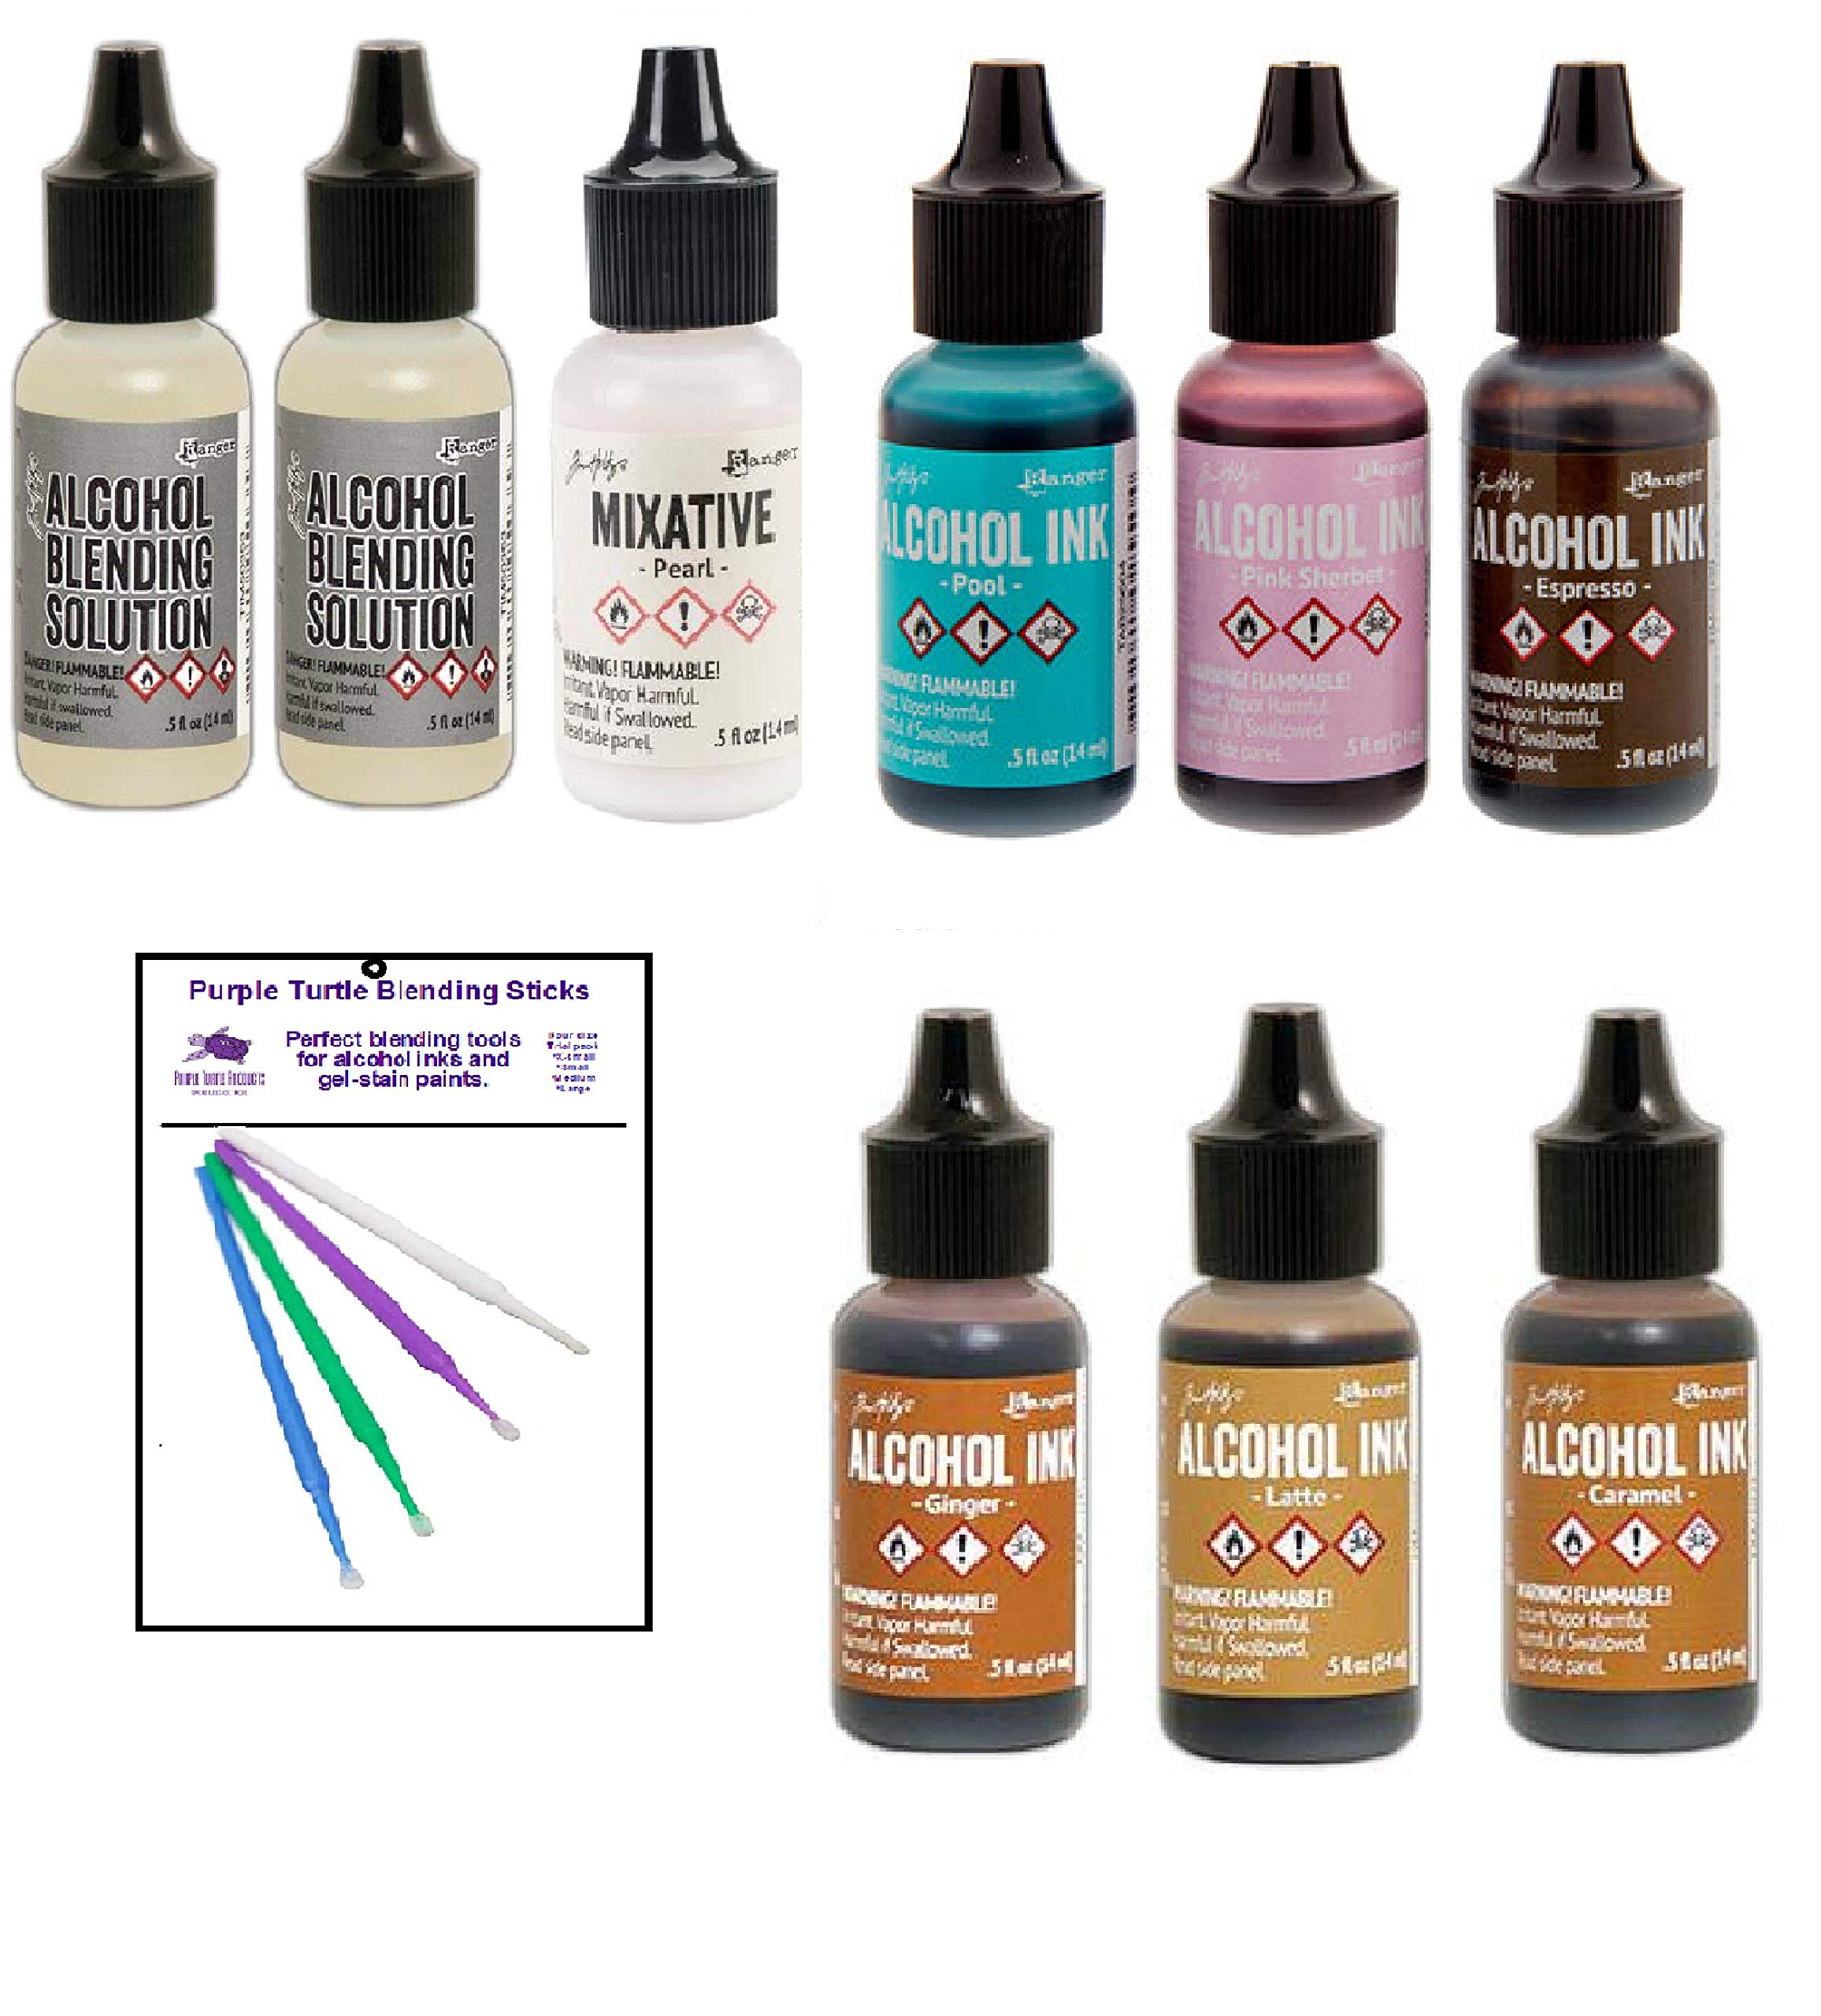 Tim Holtz Adirondack Alcohol Ink Value Pack Bundles of Favorite Colors Plus Pearl Mixative with Two Alcohol Blending Solutions, Bonus Purple Turtle Blending Sticks, (Favorite 7 Browns) by Purple Turtle Products